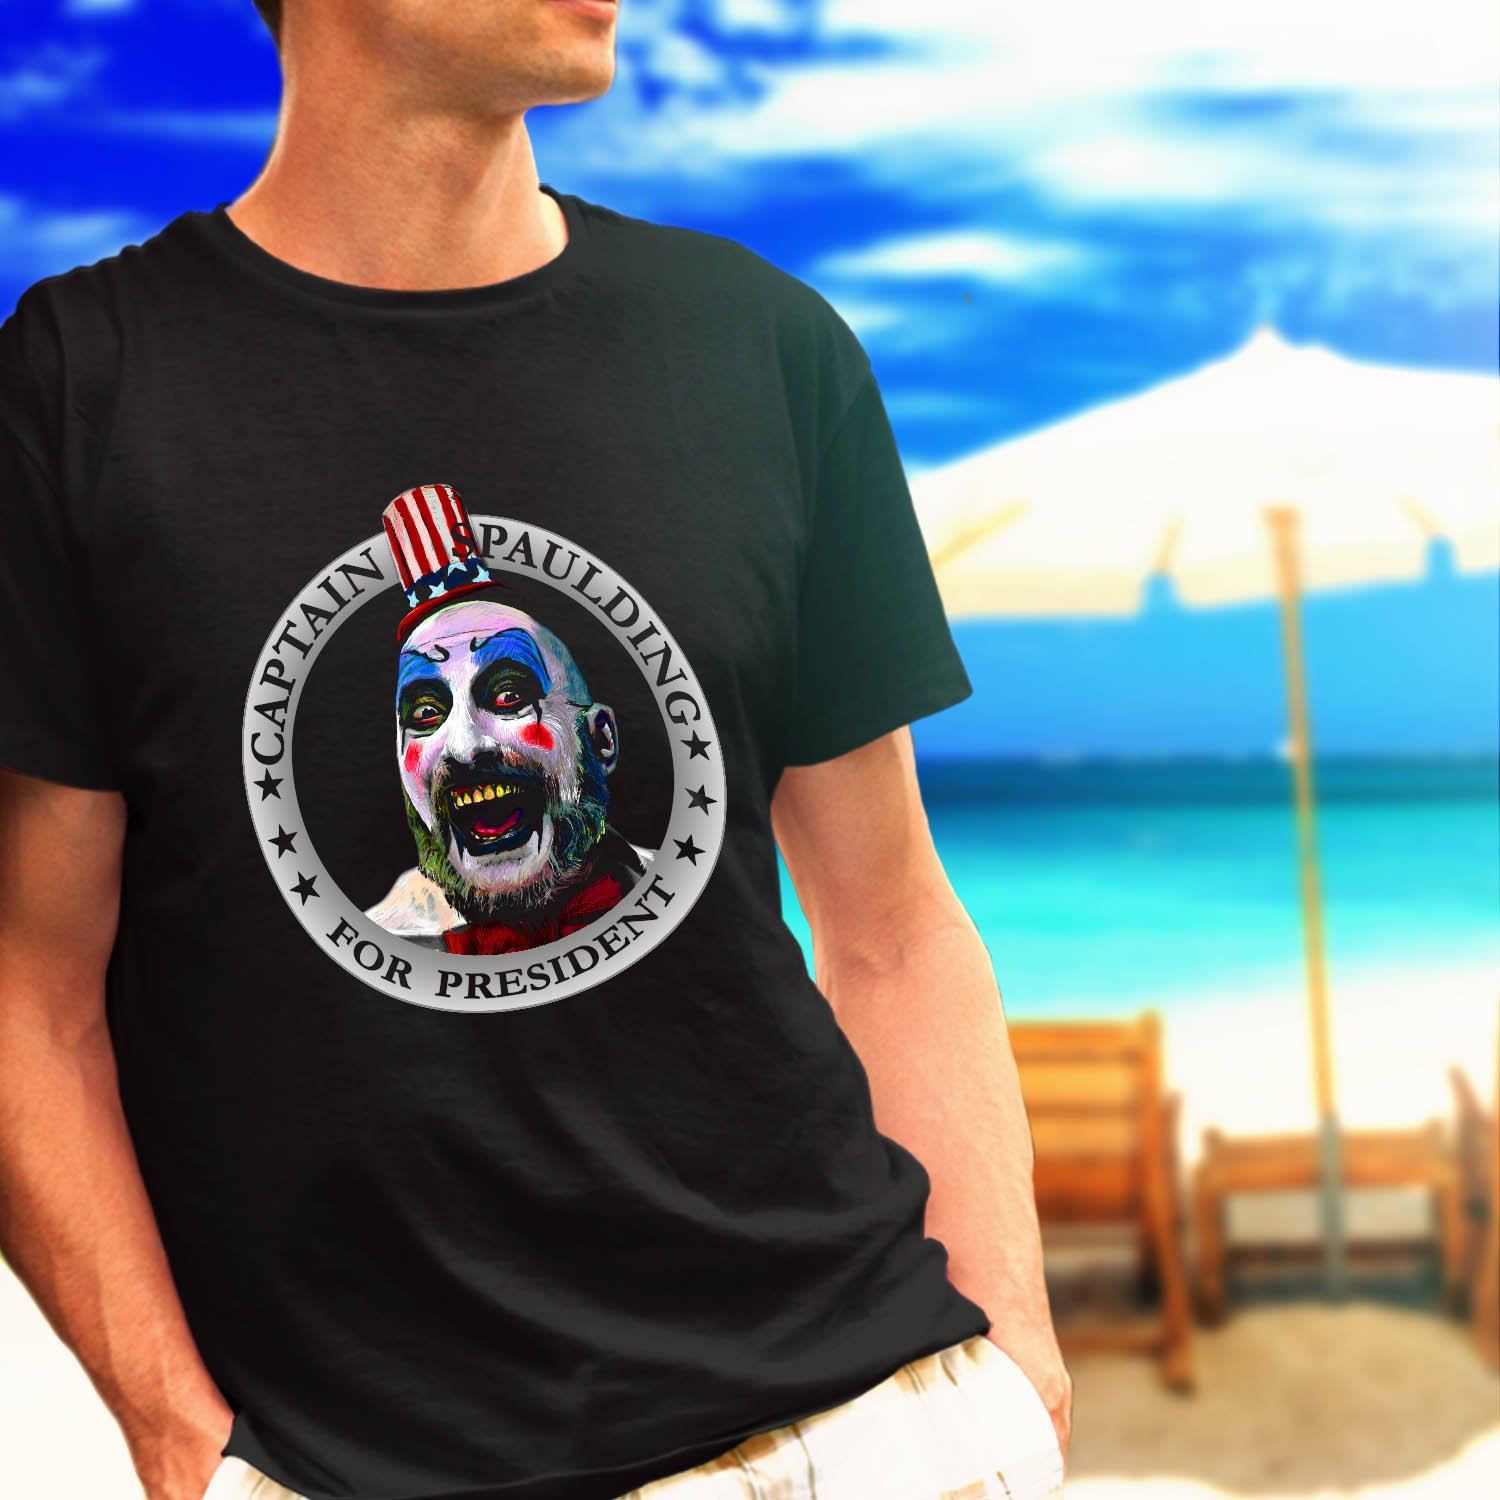 Captain Spaulding for President Rob Zombie black t-shirt tshirt shirts tee SIZE 3XL